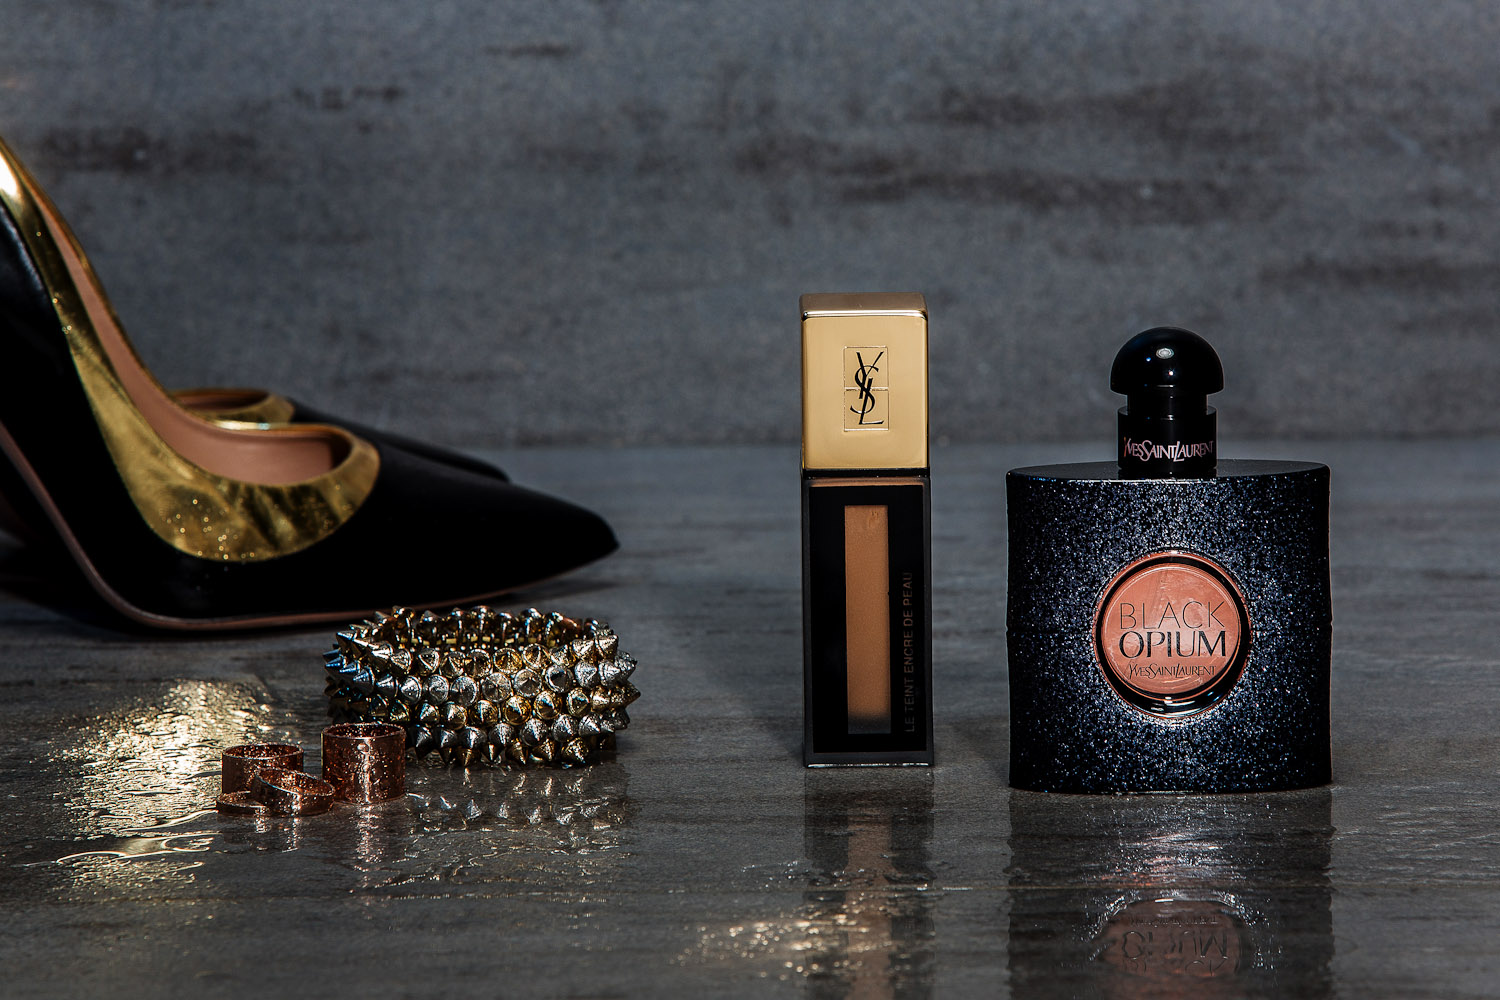 Yves Saint Laurent Black Opium, Edie Campbell Black Opium, Chiara Ferragni Black Opium, Italian fashion beauty blogger It-Girl by Eleonora Petrella